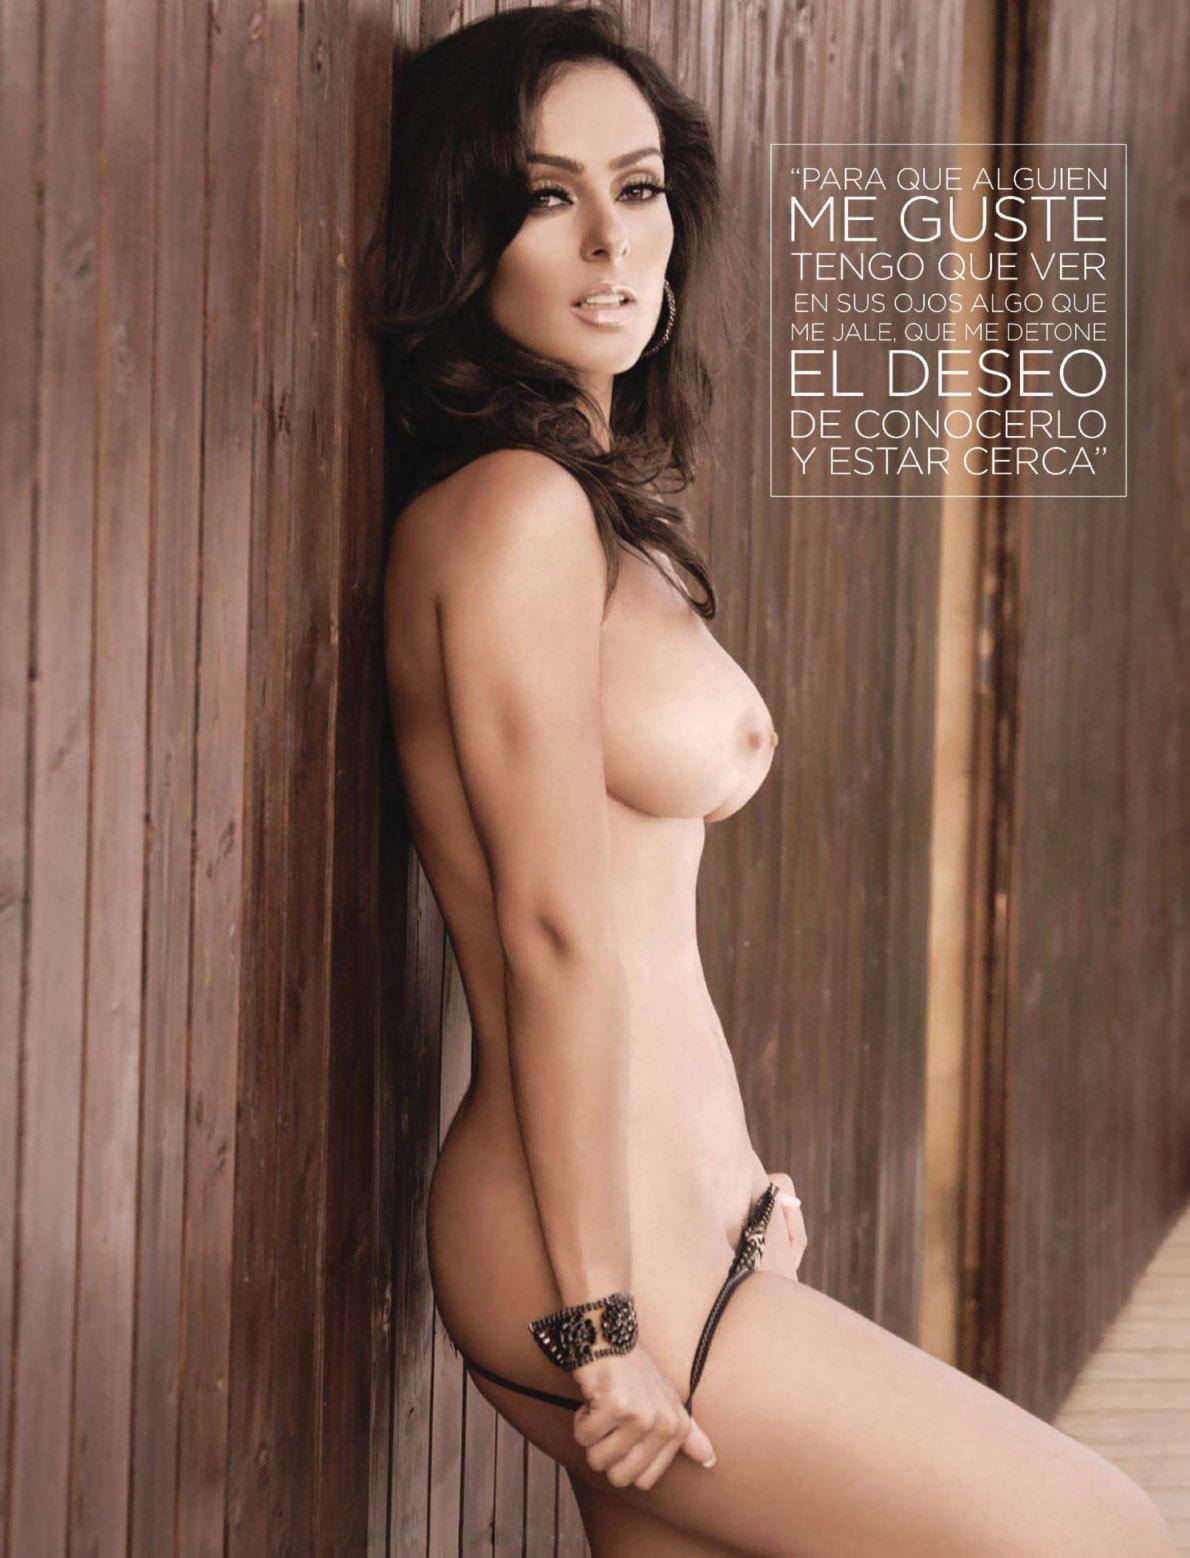 Andrea Garcia H Extremo andrea garcía - page 2 pictures, naked, oops, topless